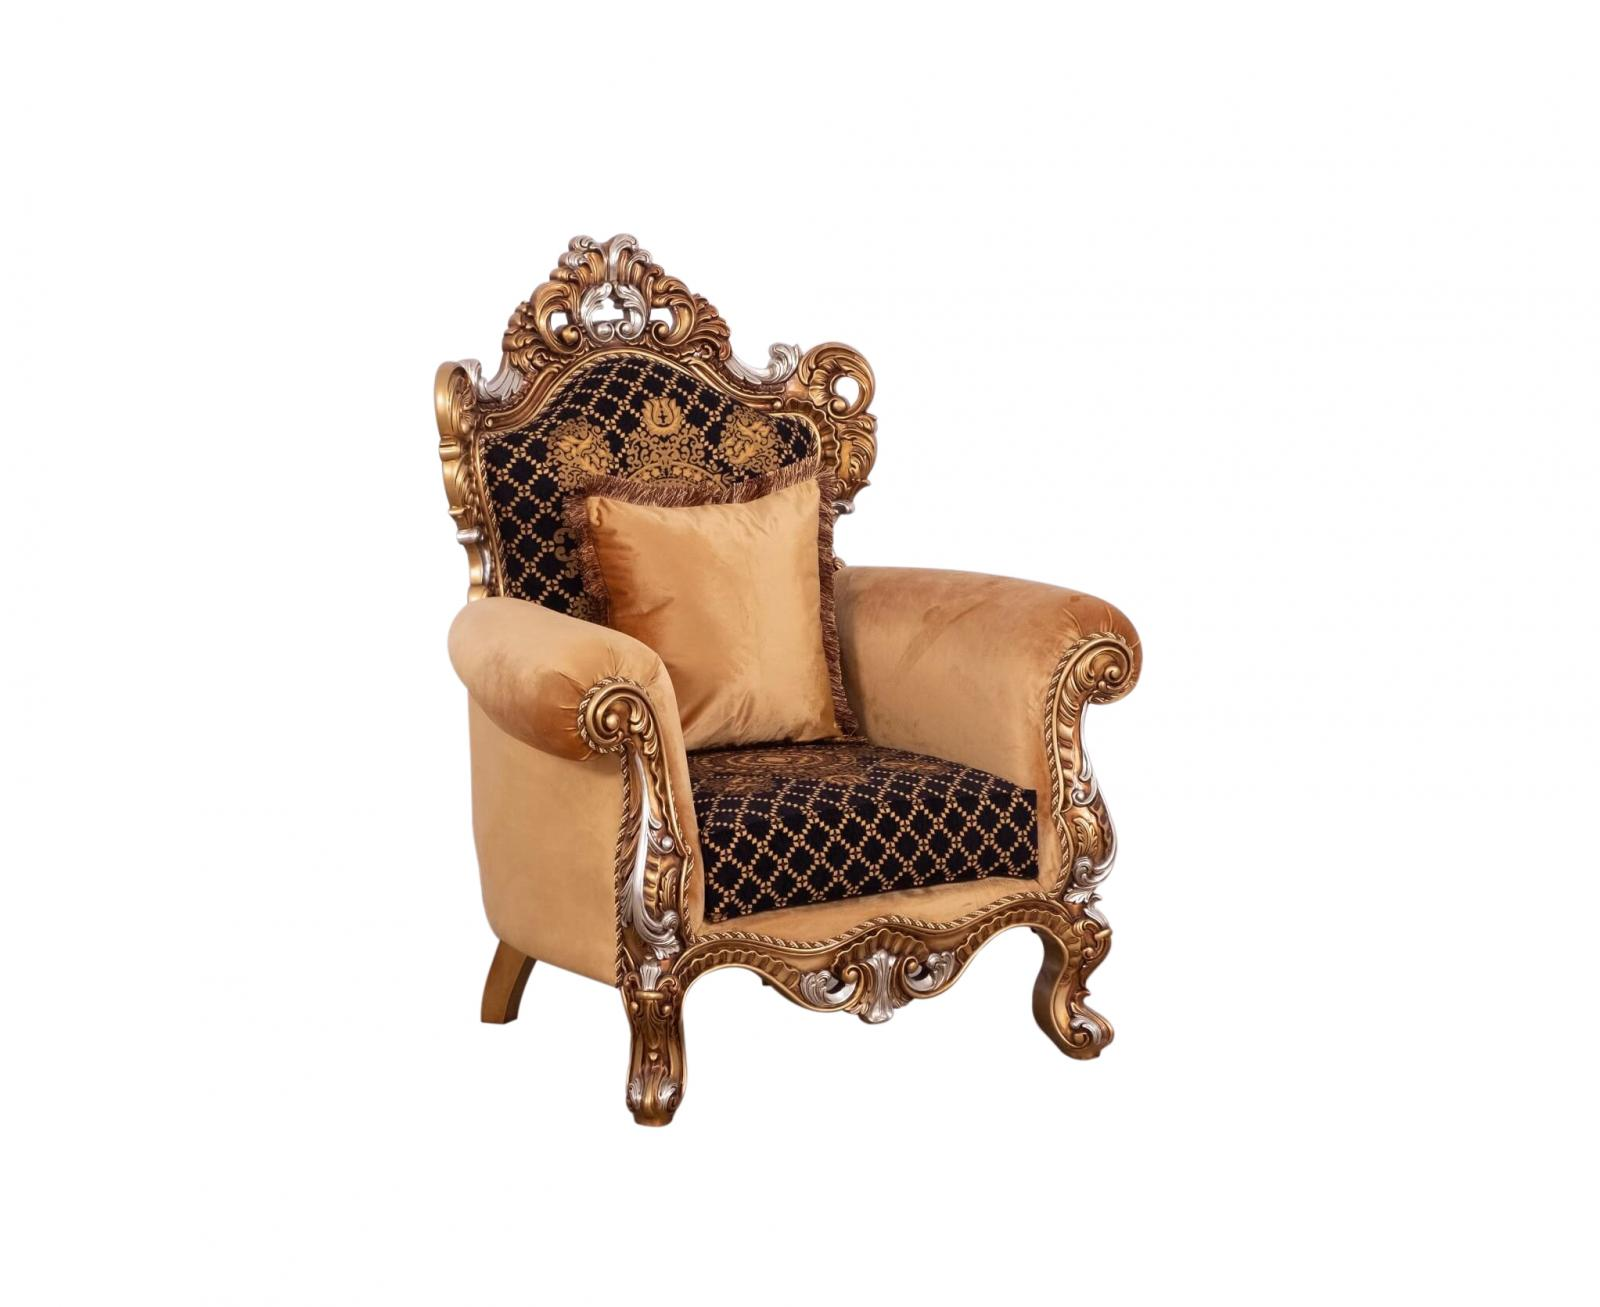 Classic  Traditional Gold   Black Wood  Solid Hardwood and Fabric Arm Chair EUROPEAN FURNITURE 42035-C